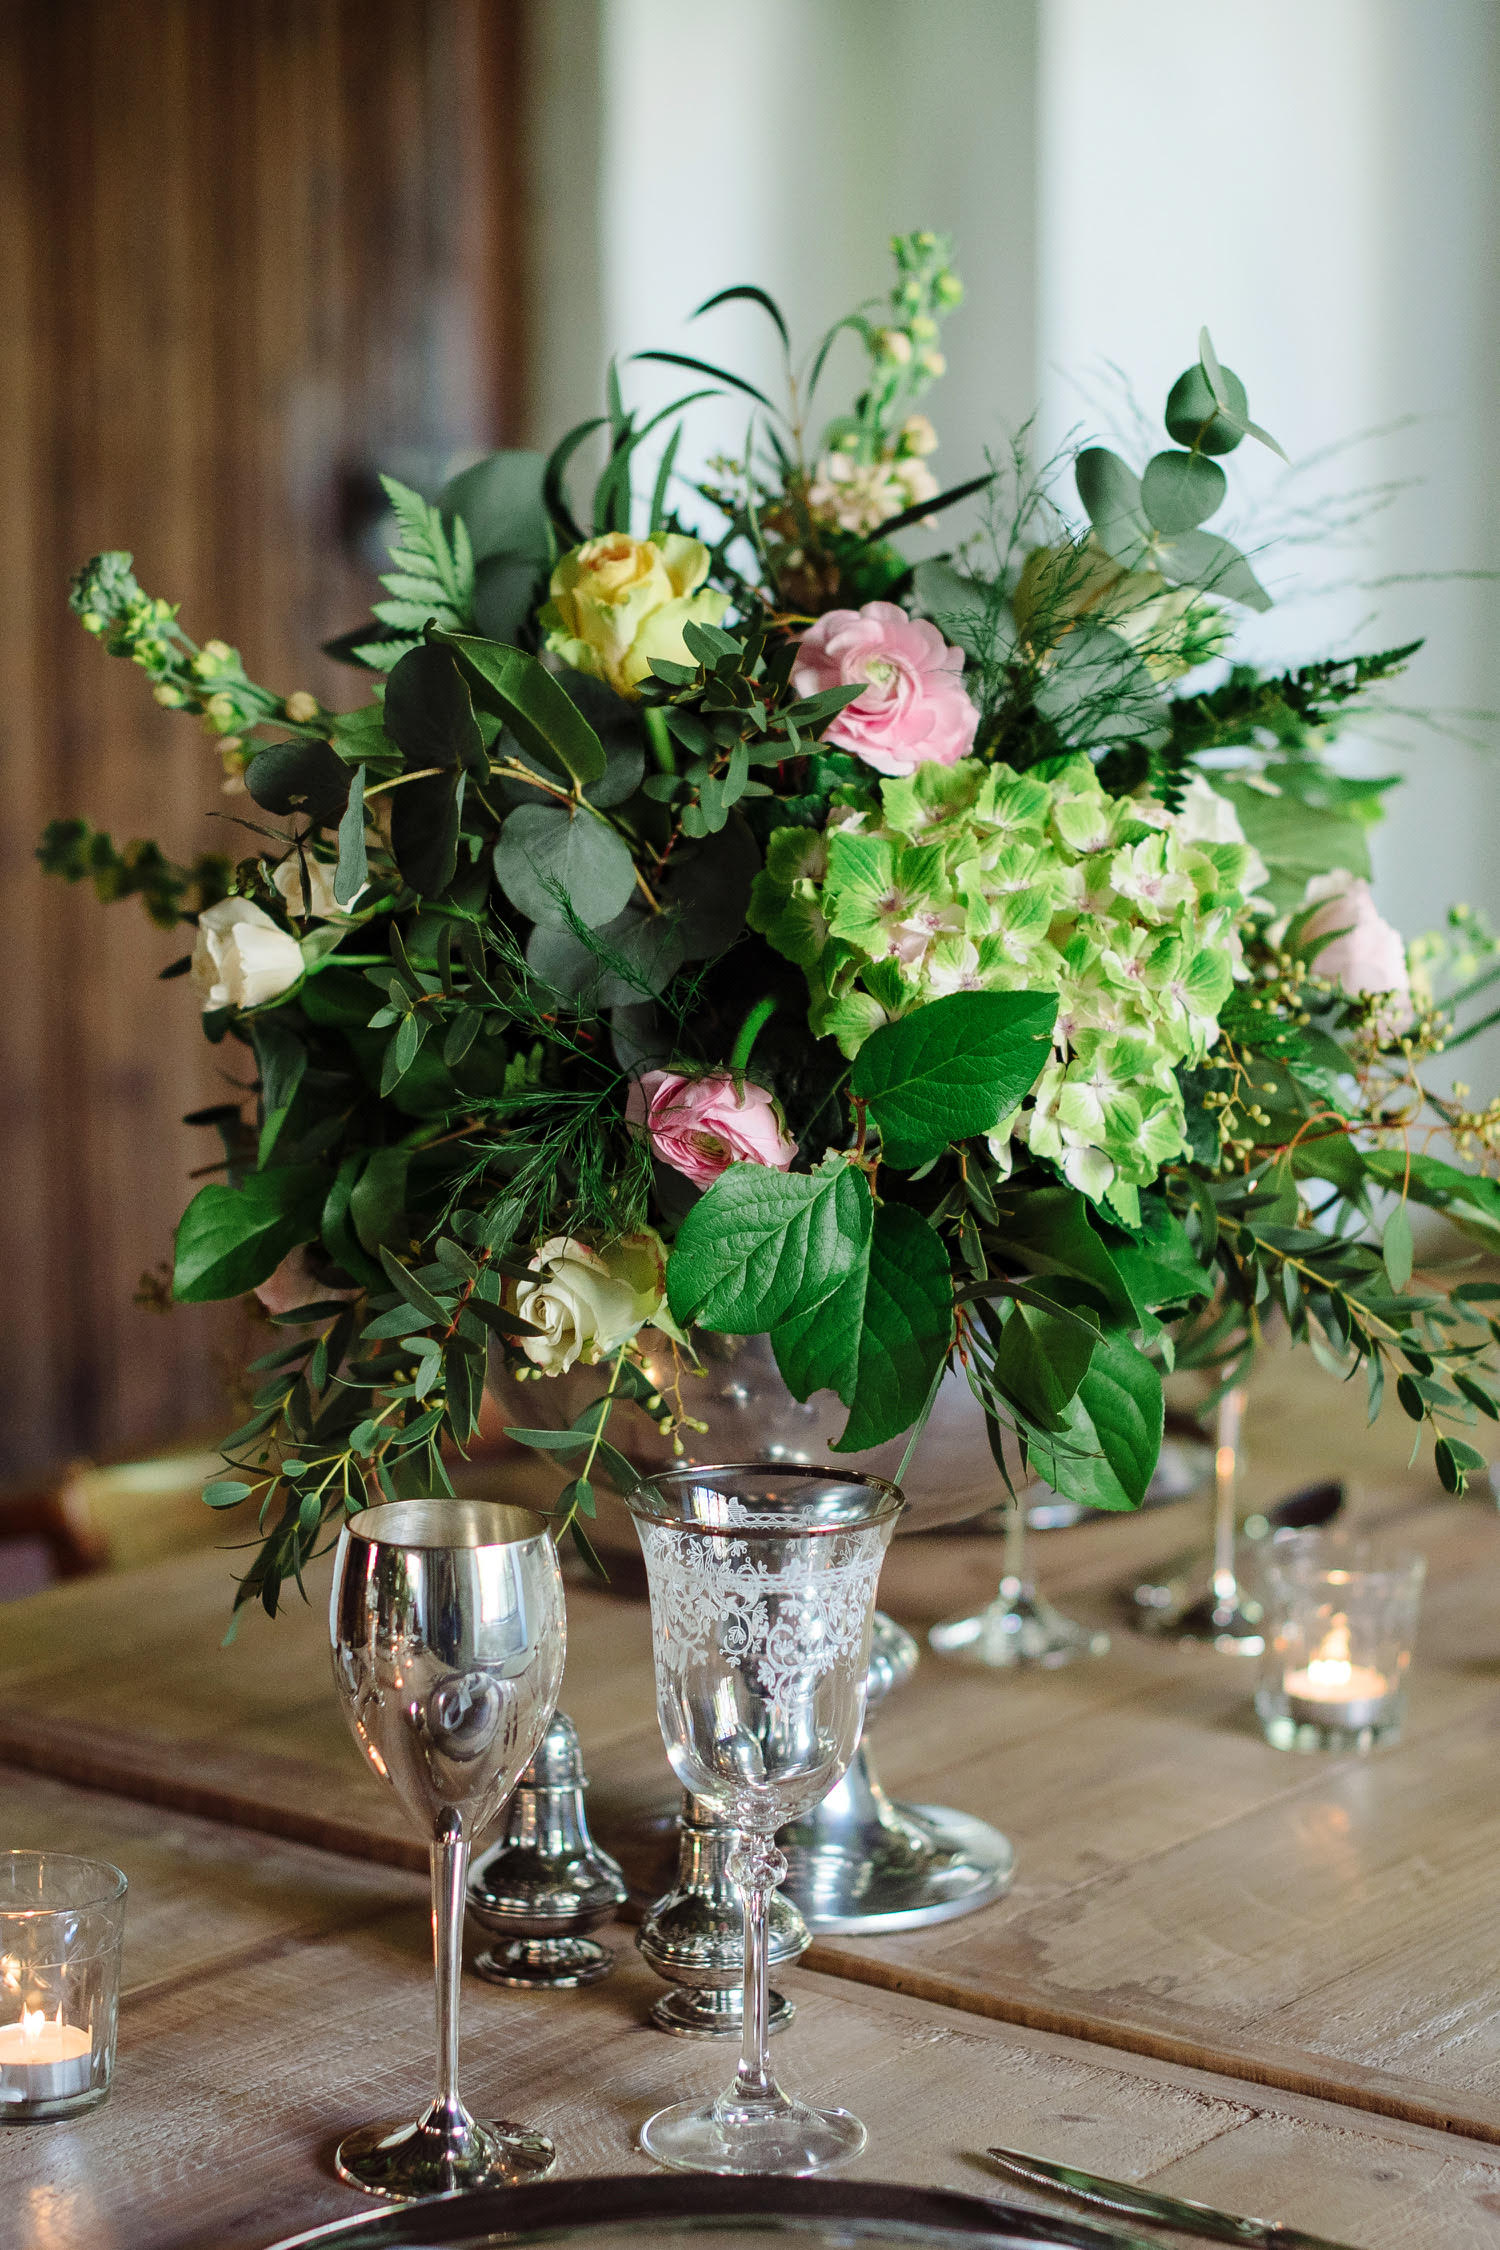 uk-pink-green-wedding-centerpiece-lily-lavender-events.jpg